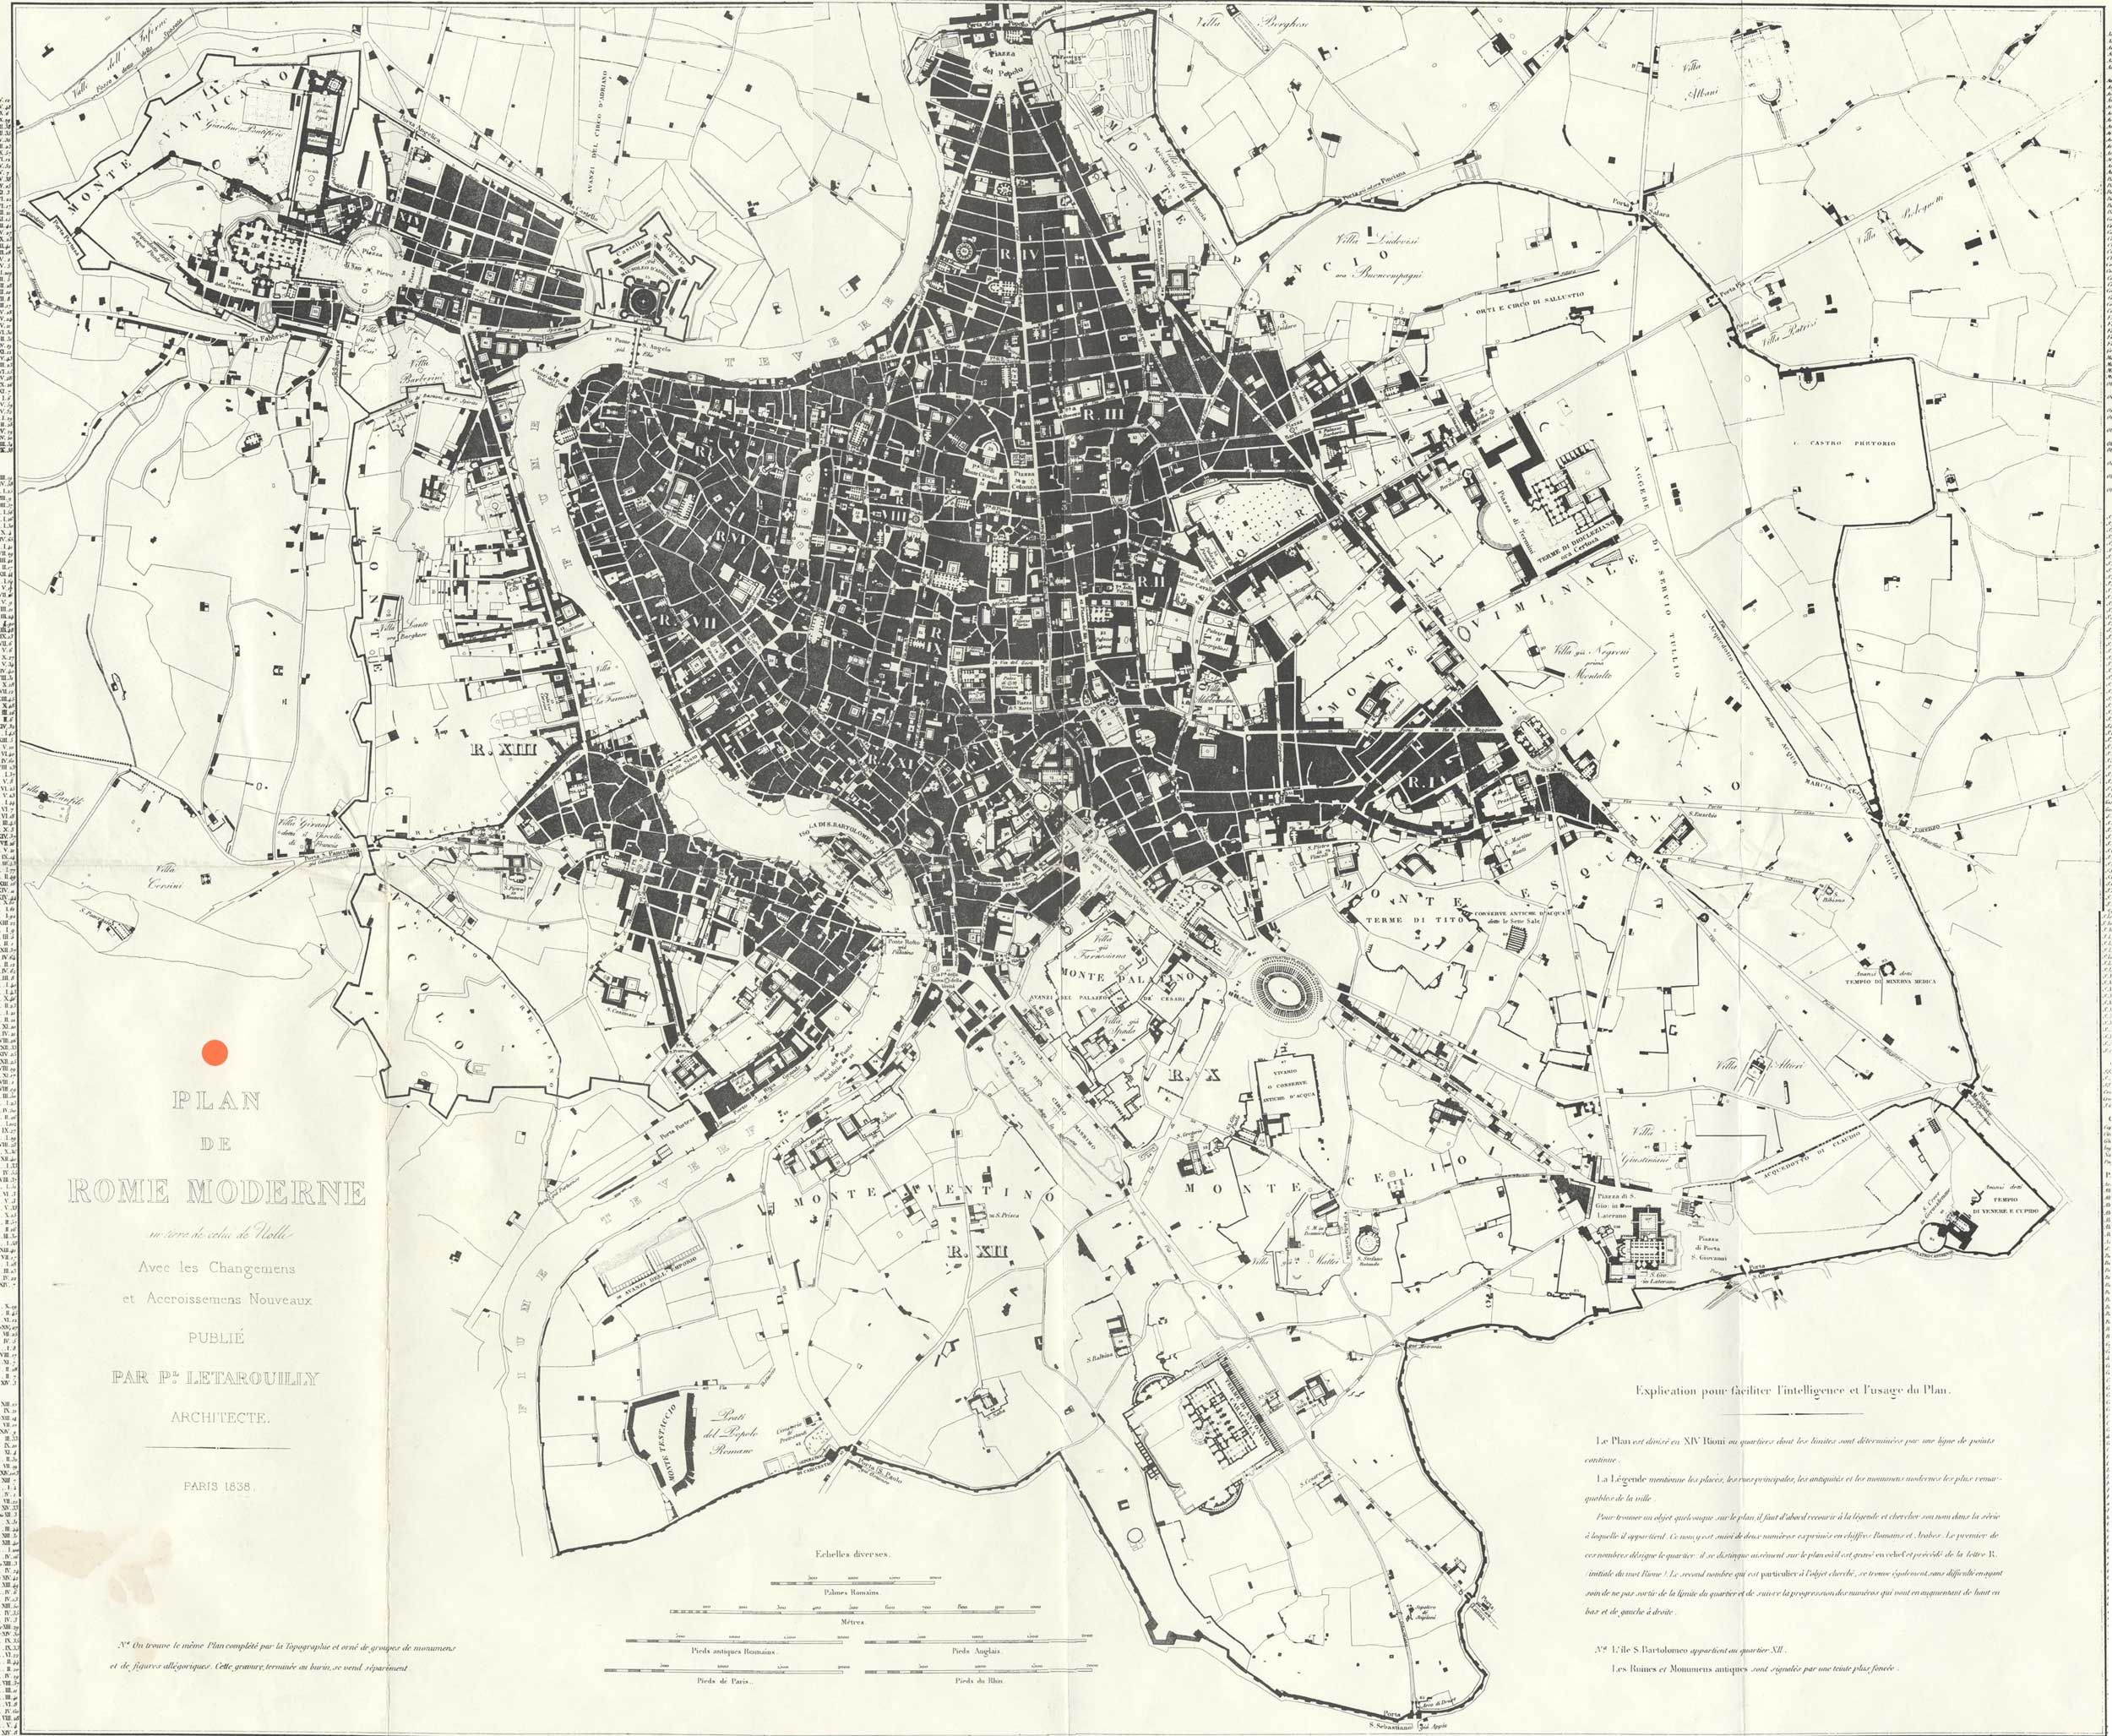 Historical Plan Map Rome Large Map My Inspirations Pinterest - Vatican city rome map